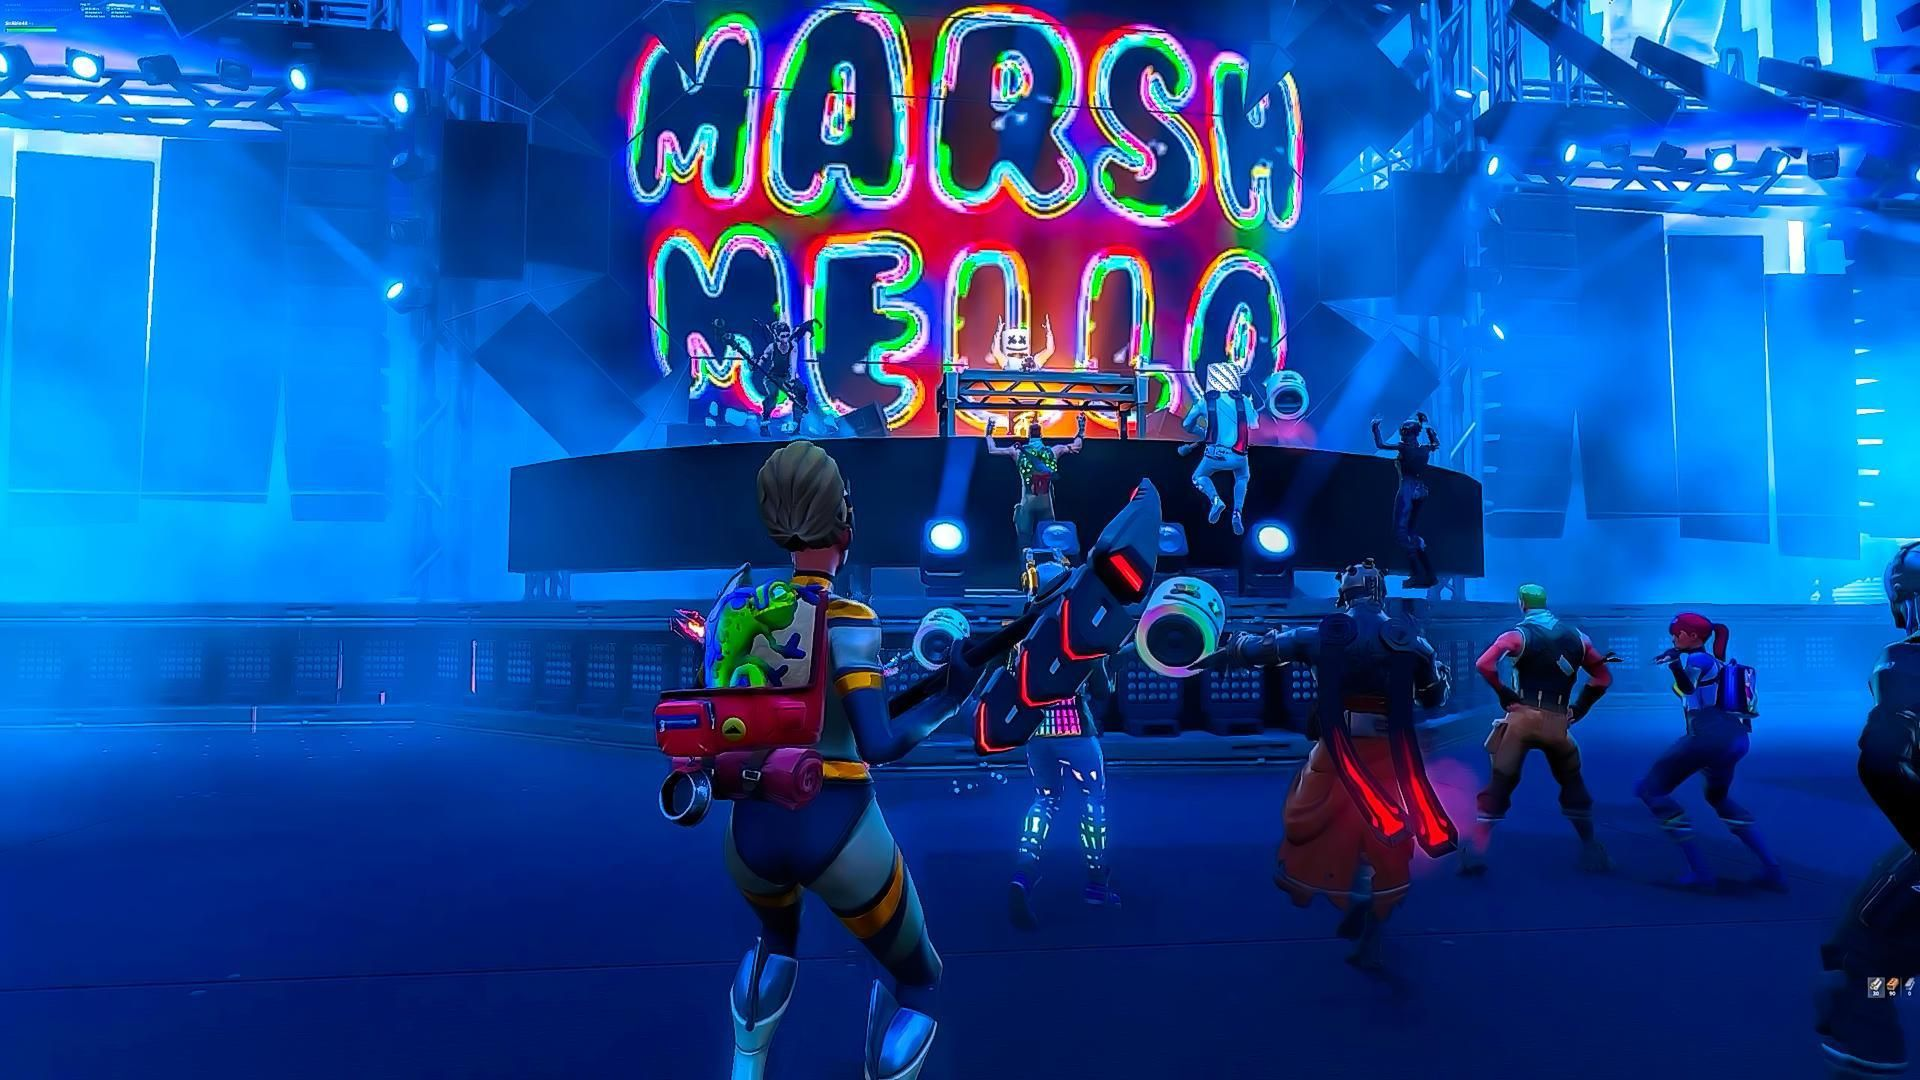 Fortnite Party At Pleasant Park With Marshmello As The Main Star